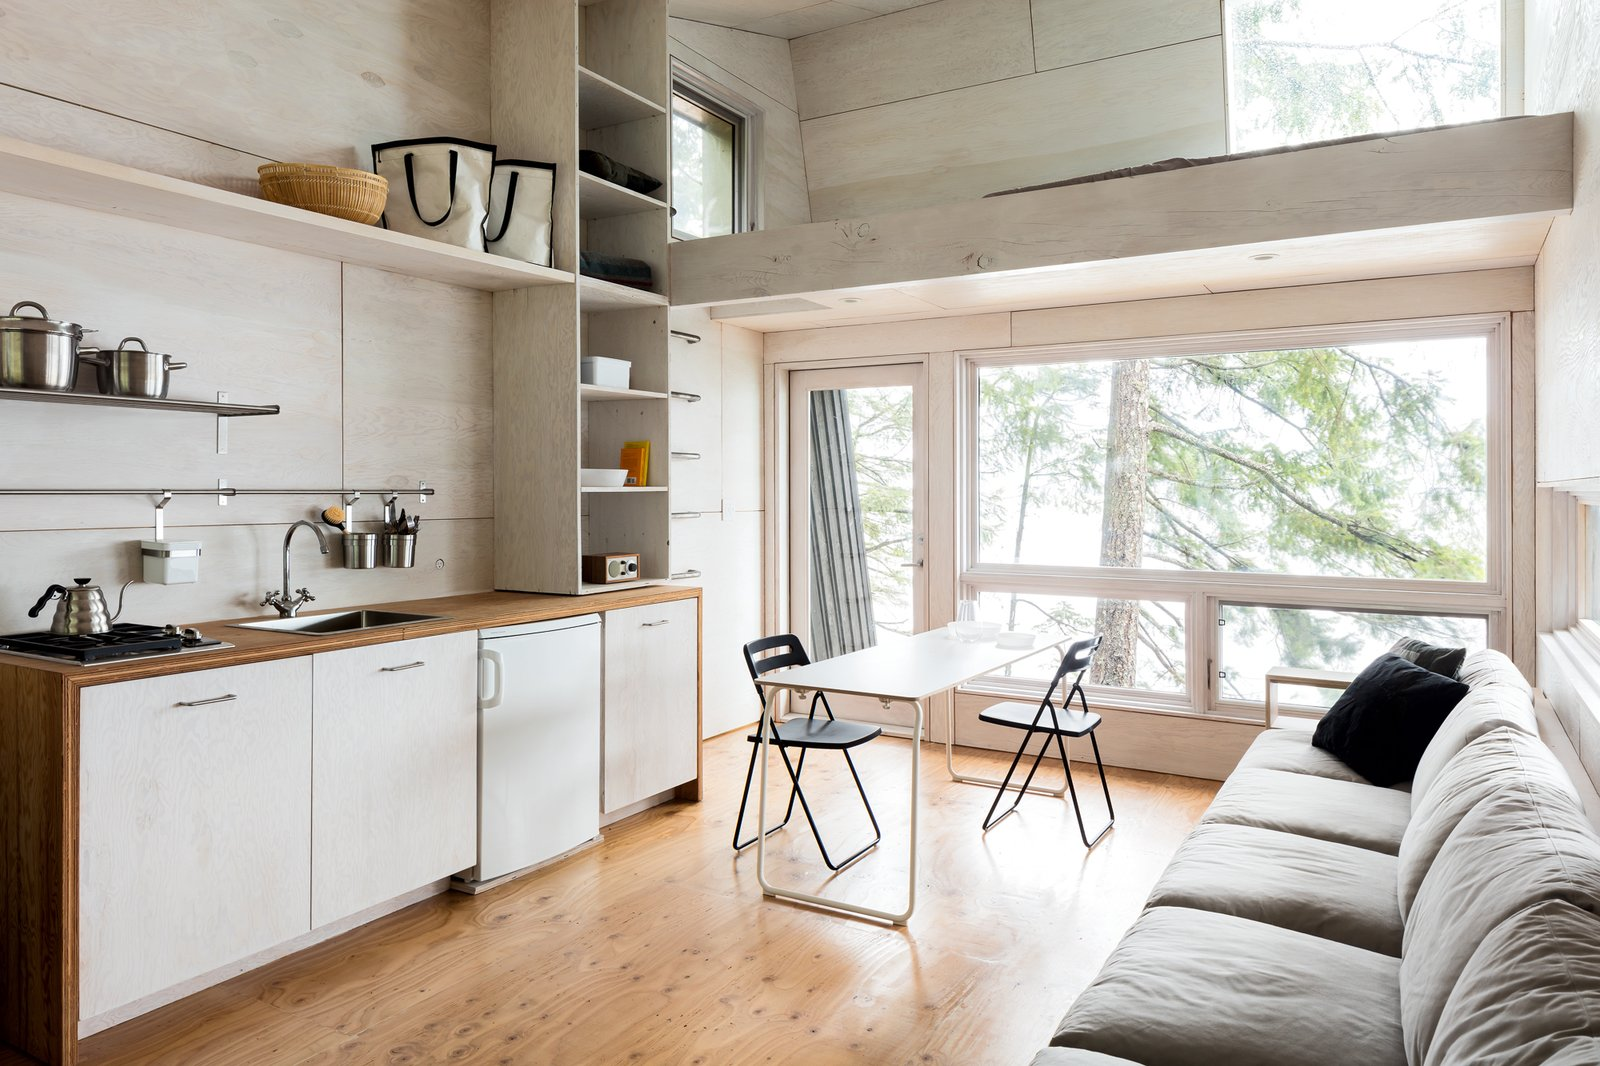 Kitchen, Wood Cabinet, Light Hardwood Floor, Drop In Sink, Dishwasher, Wood Counter, and Range  Photos from An Angled Cabin in British Columbia Makes an Ideal Island Retreat